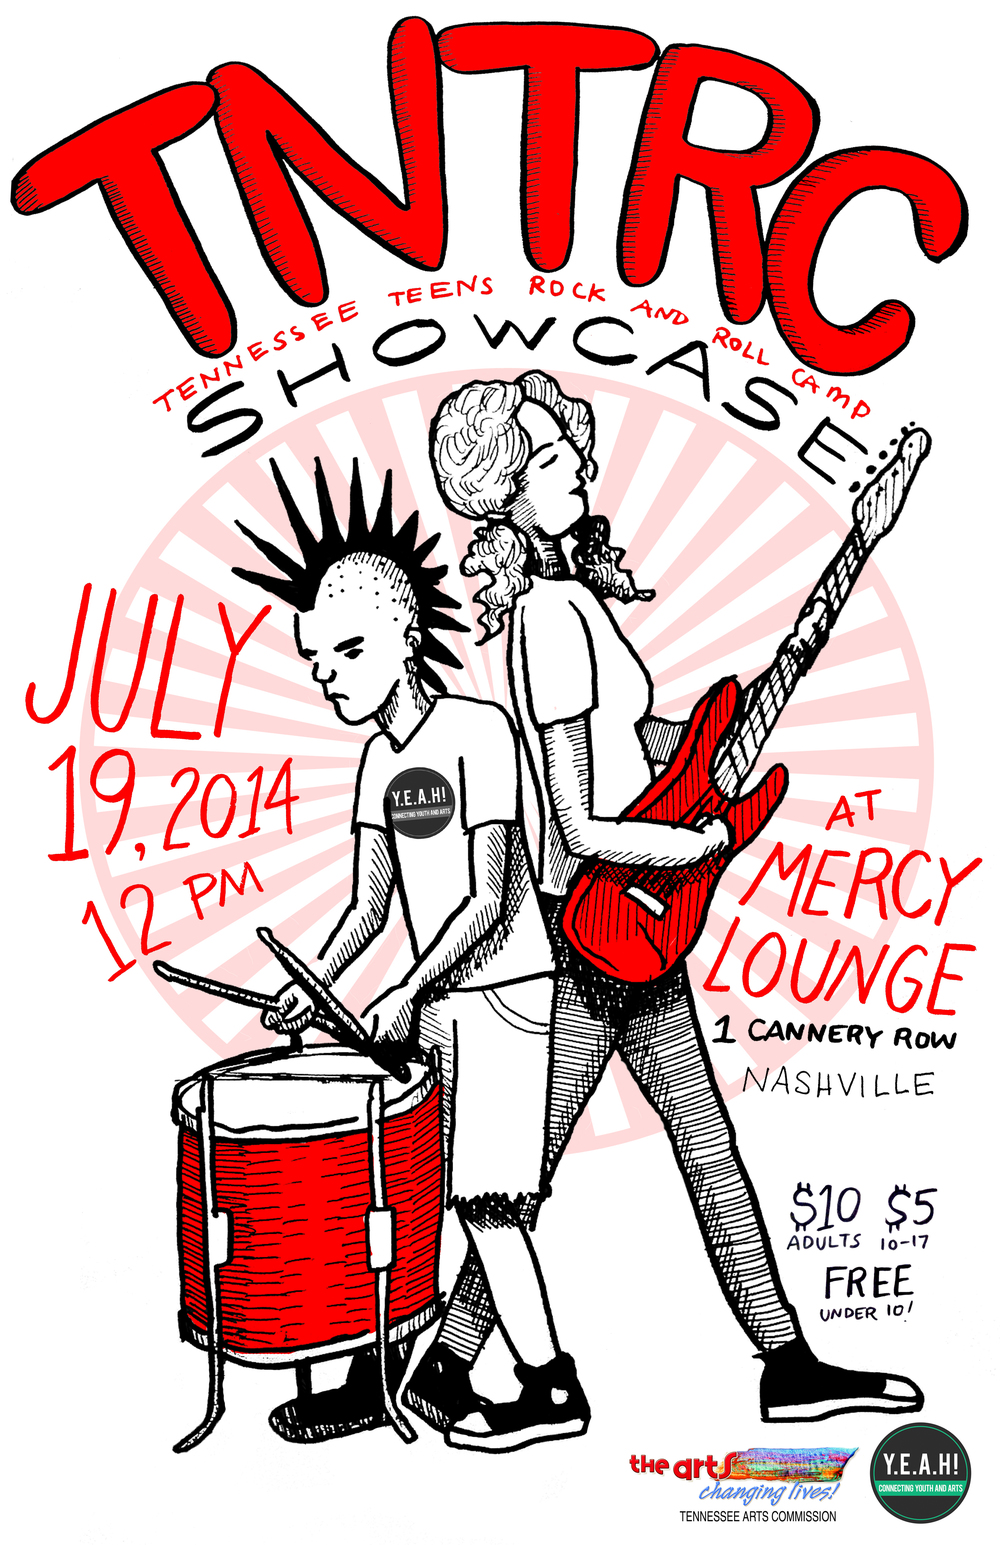 Tennessee Teens Rock n roll Camp Showcase